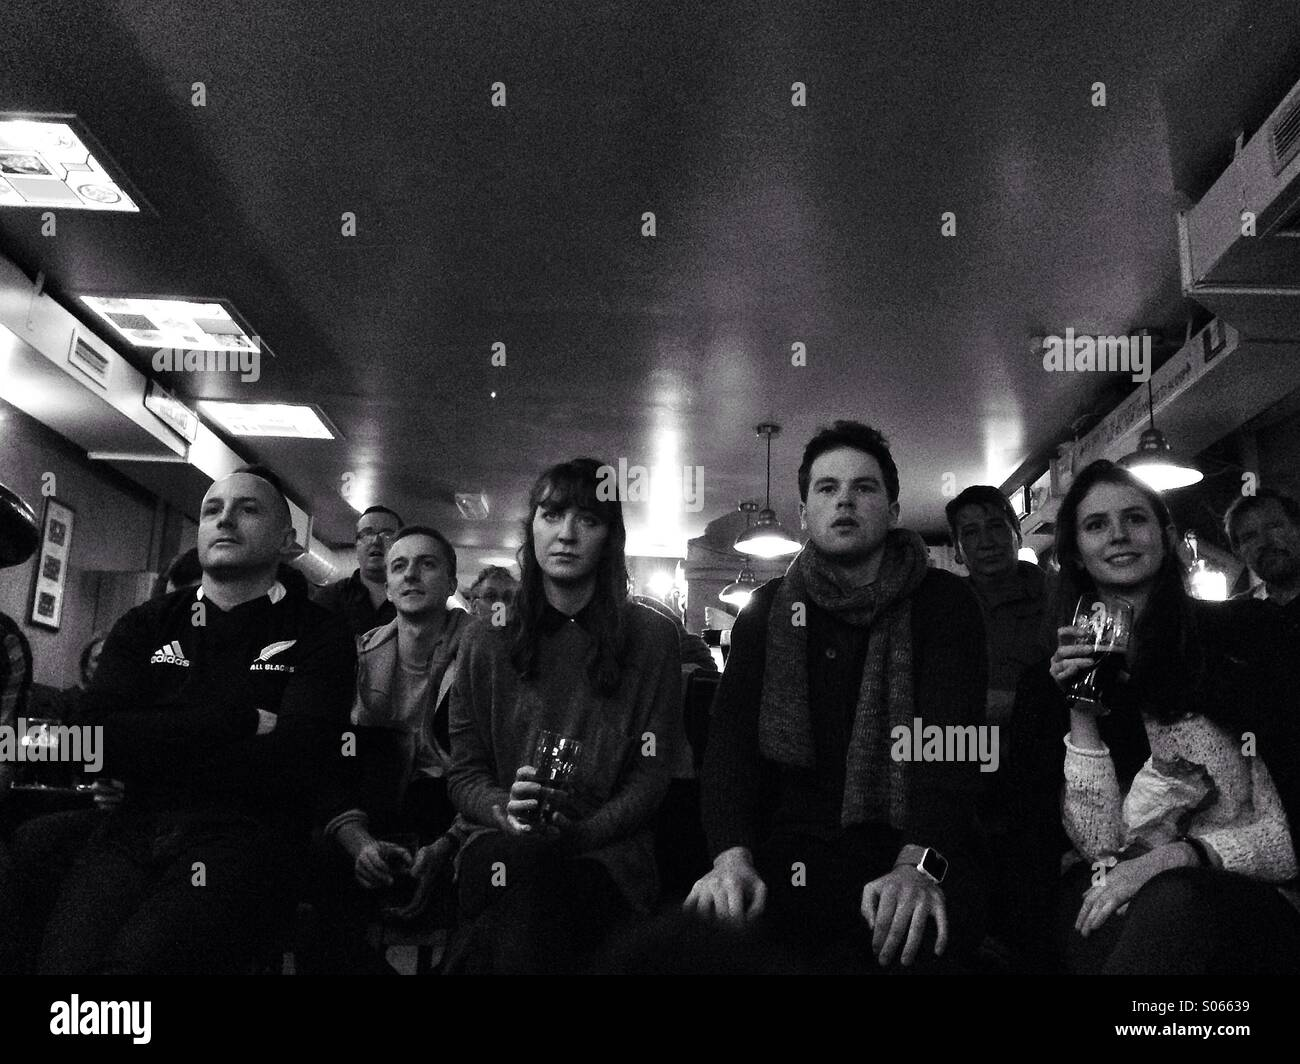 Watching a rugby match in a bar - Stock Image